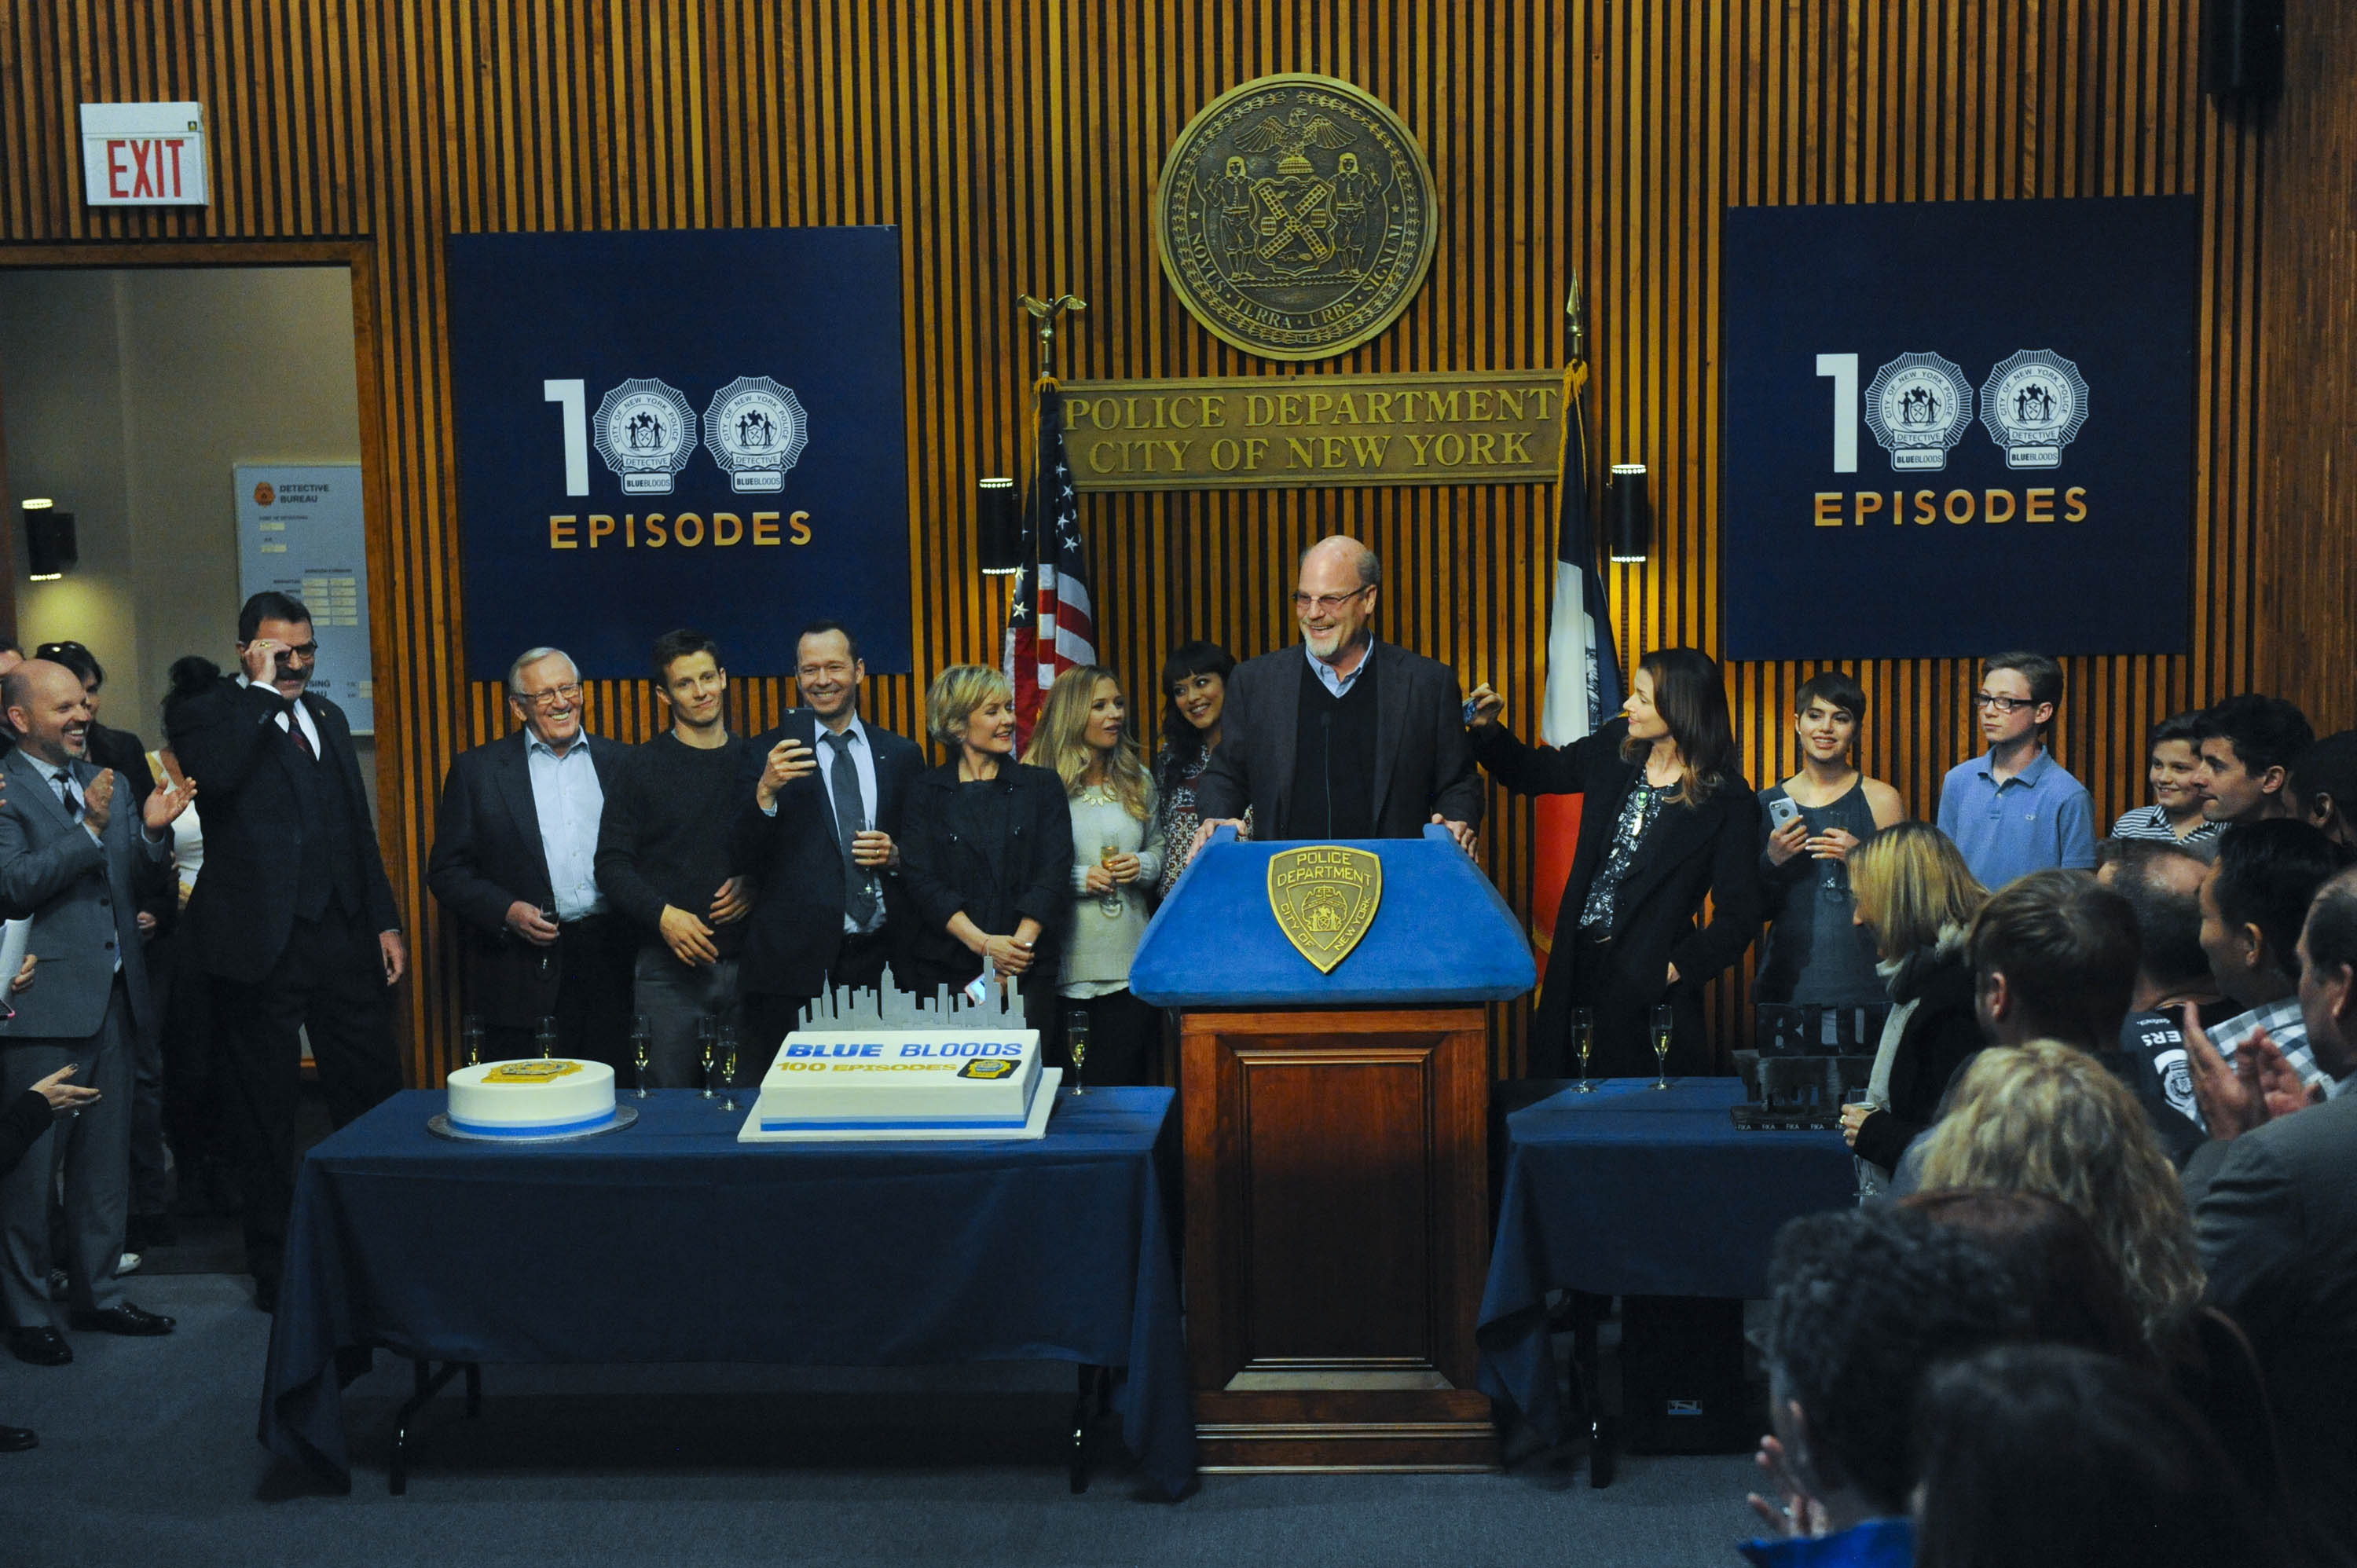 Executive Producer Kevin Wade Speaks at the Blue Bloods 100th Episode Celebration